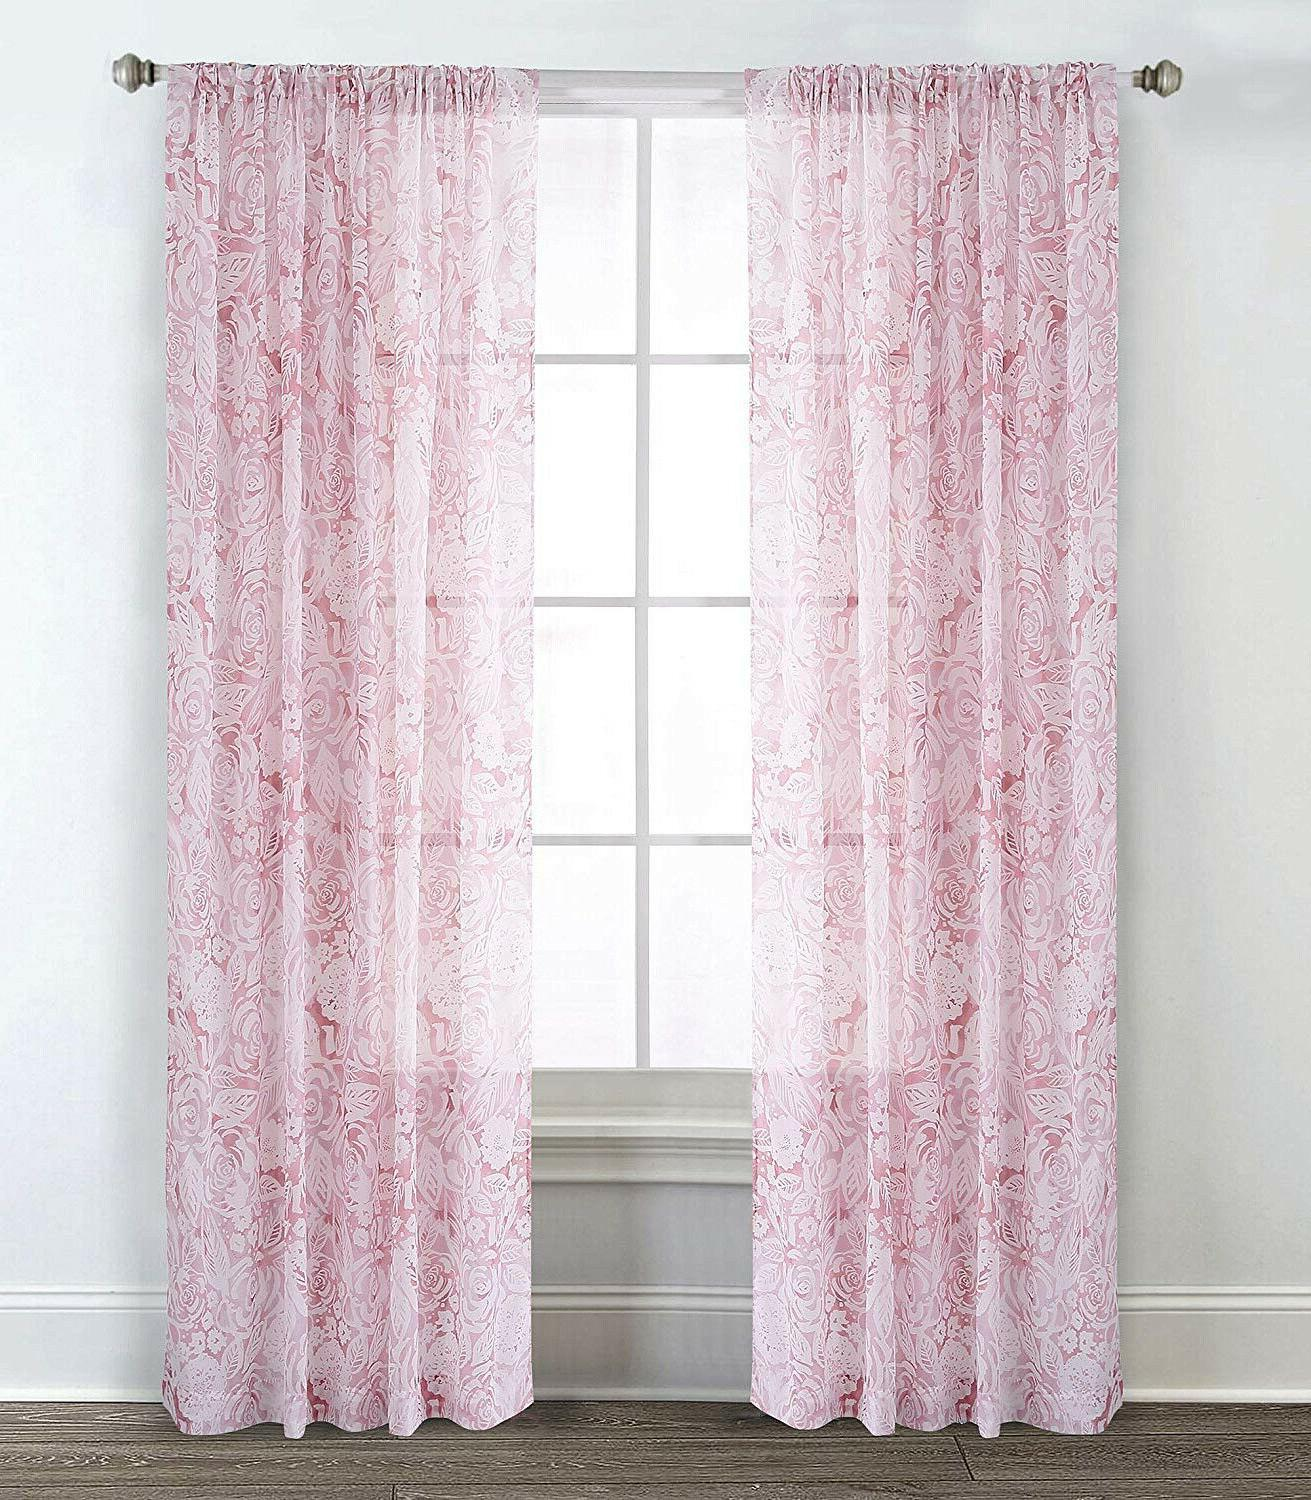 100% Cotton Pink 4 pcs Queen Comforter Window Sheer